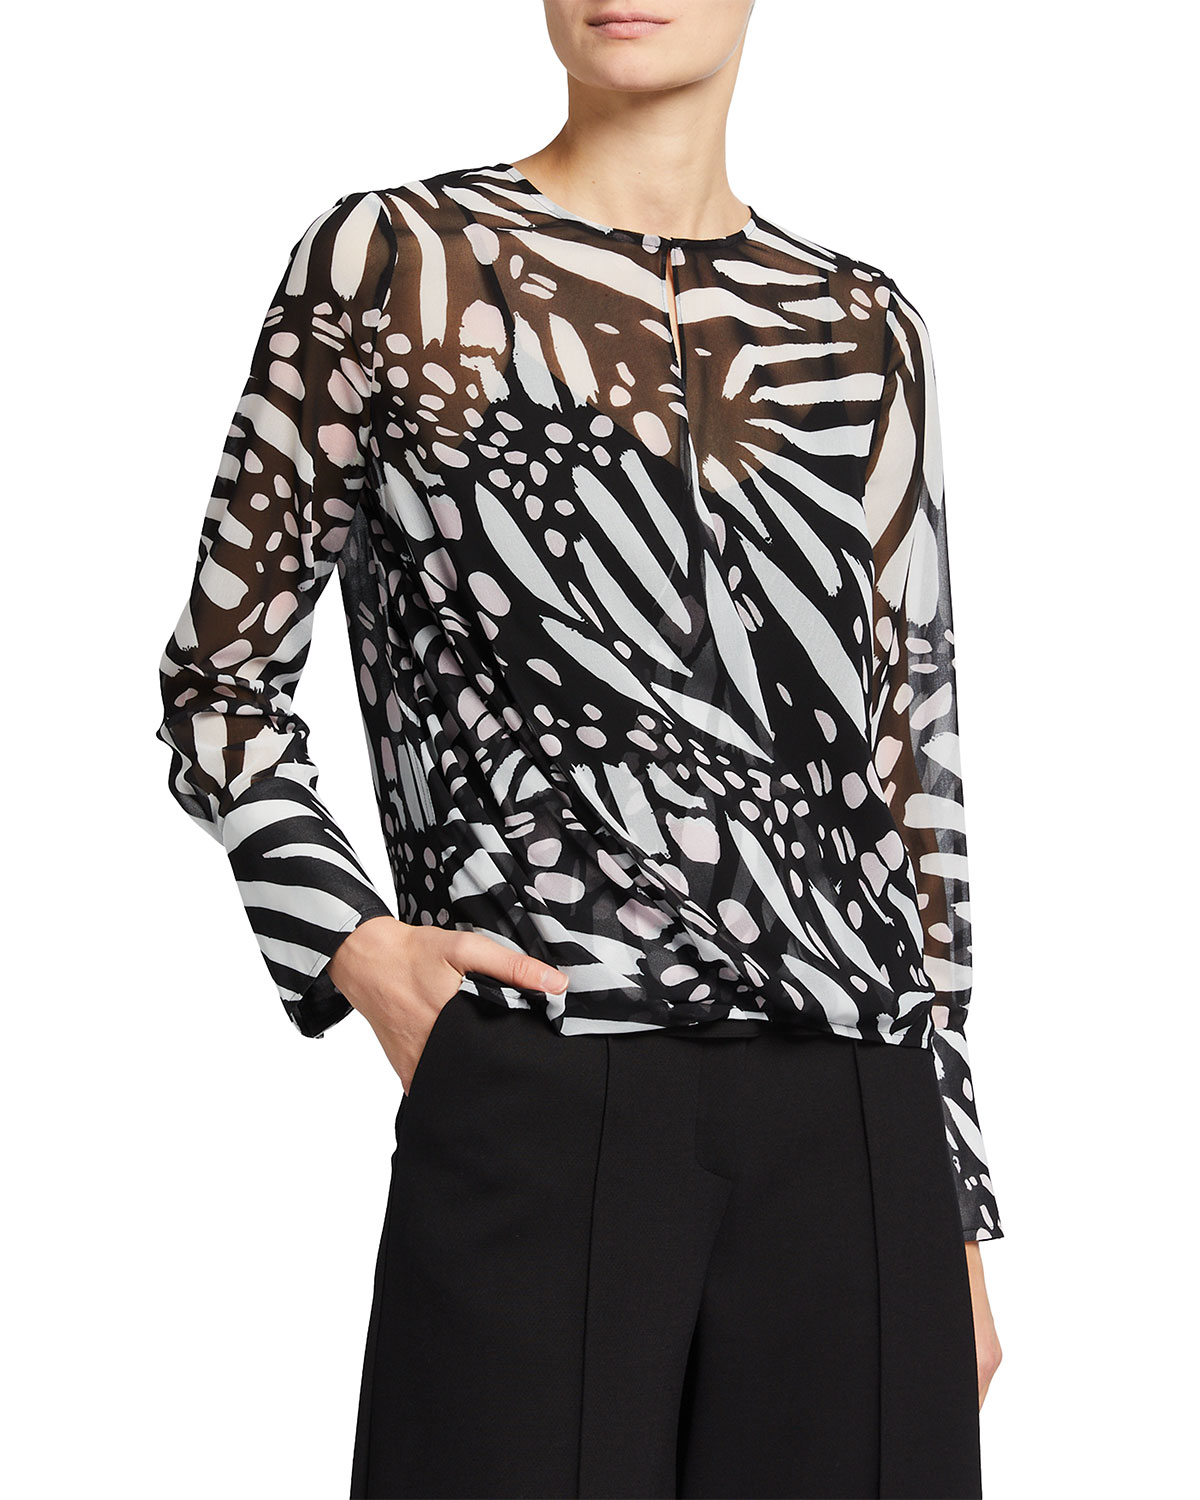 Milly Blouses ELYSA BUTTERFLY PRINT CHIFFON TOP